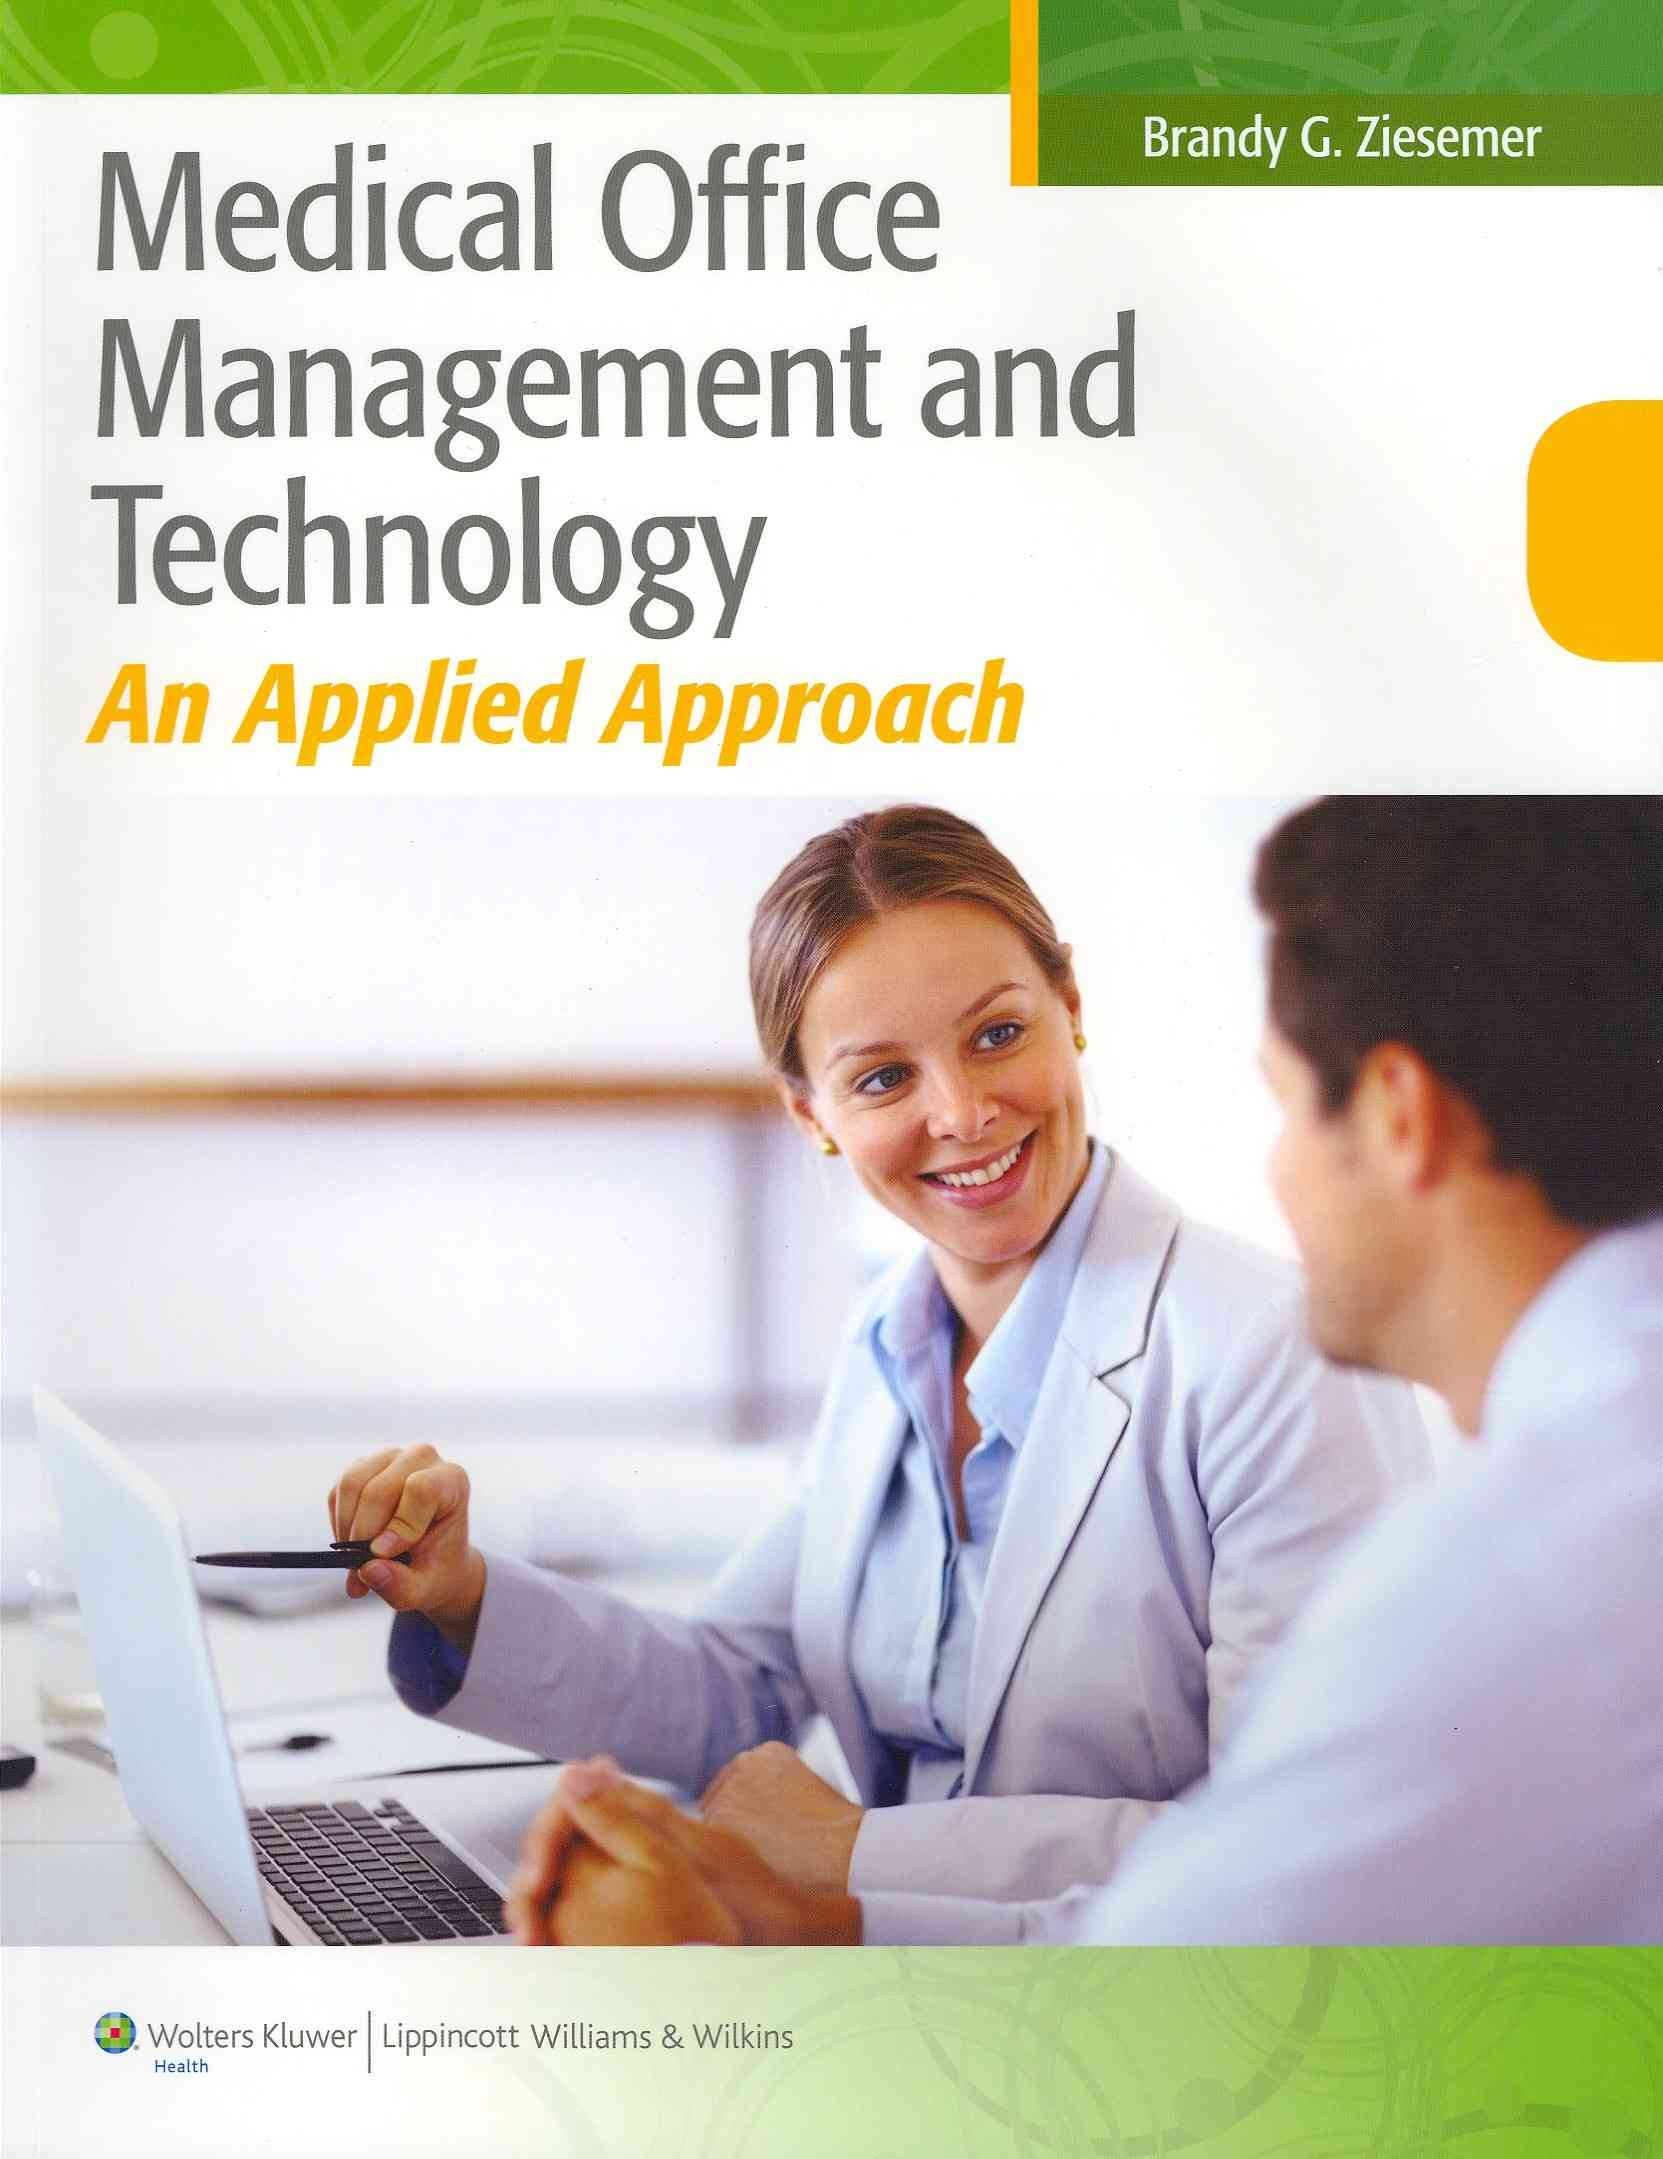 Medical Office Management and Technology By Ziesemer, Brandy